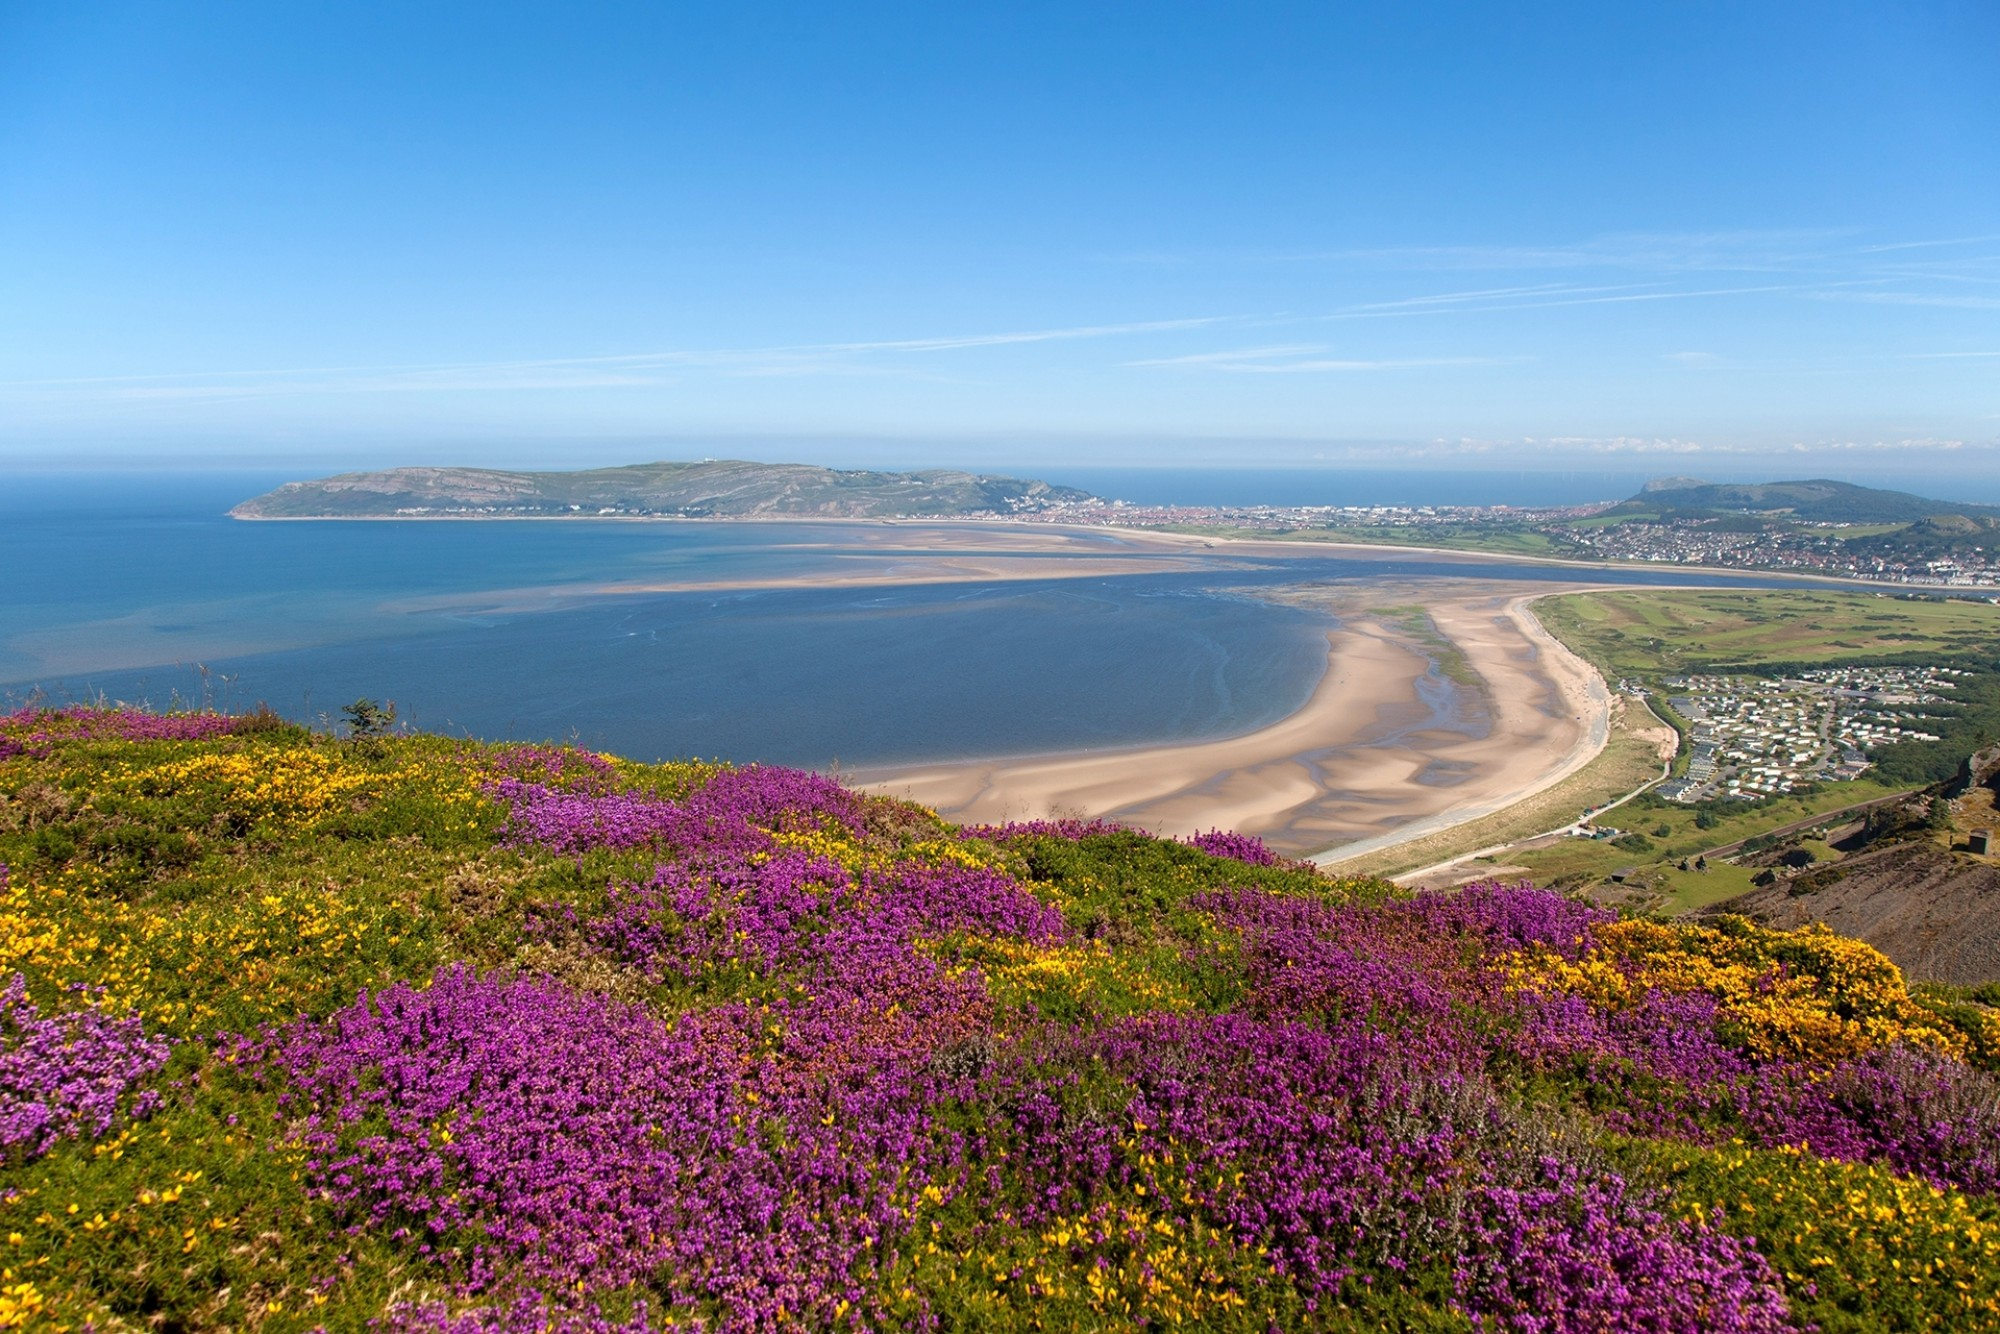 Views-from-Conwy-Mountain-towards-Llandudno-and-the-North-Wales-Coast-UK-with-sea